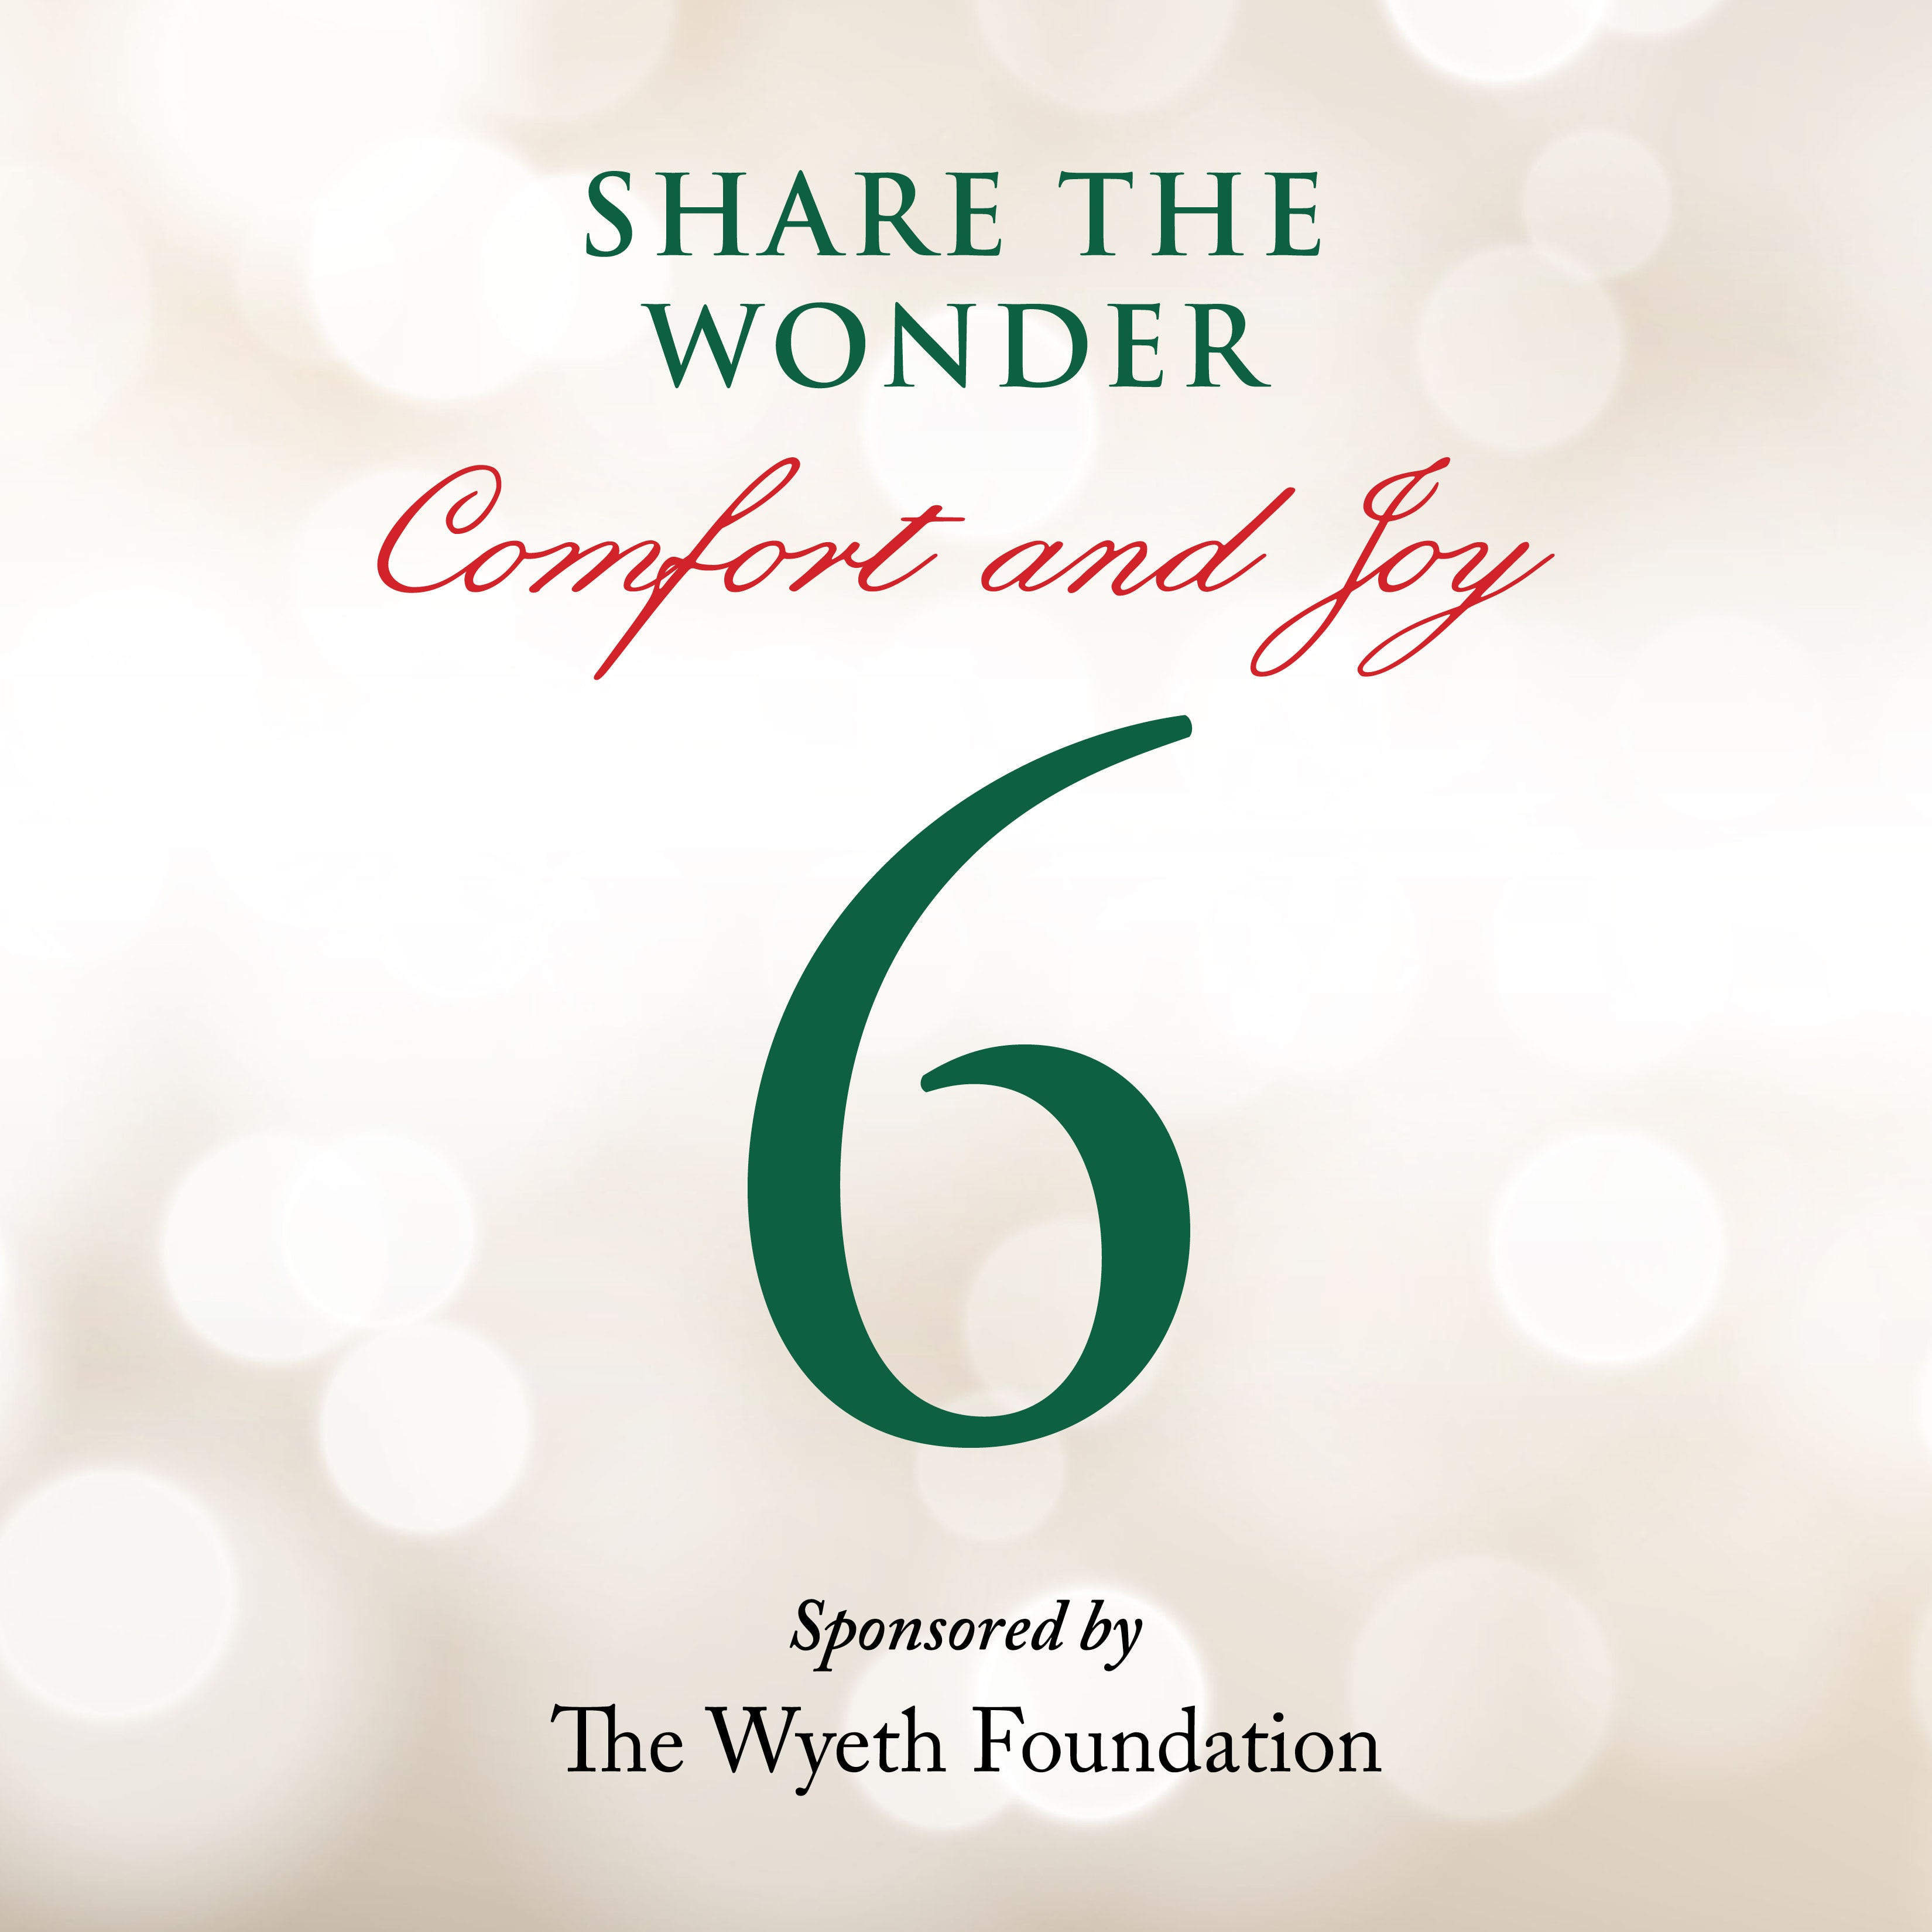 Day 6 of Share the Wonder: December 3